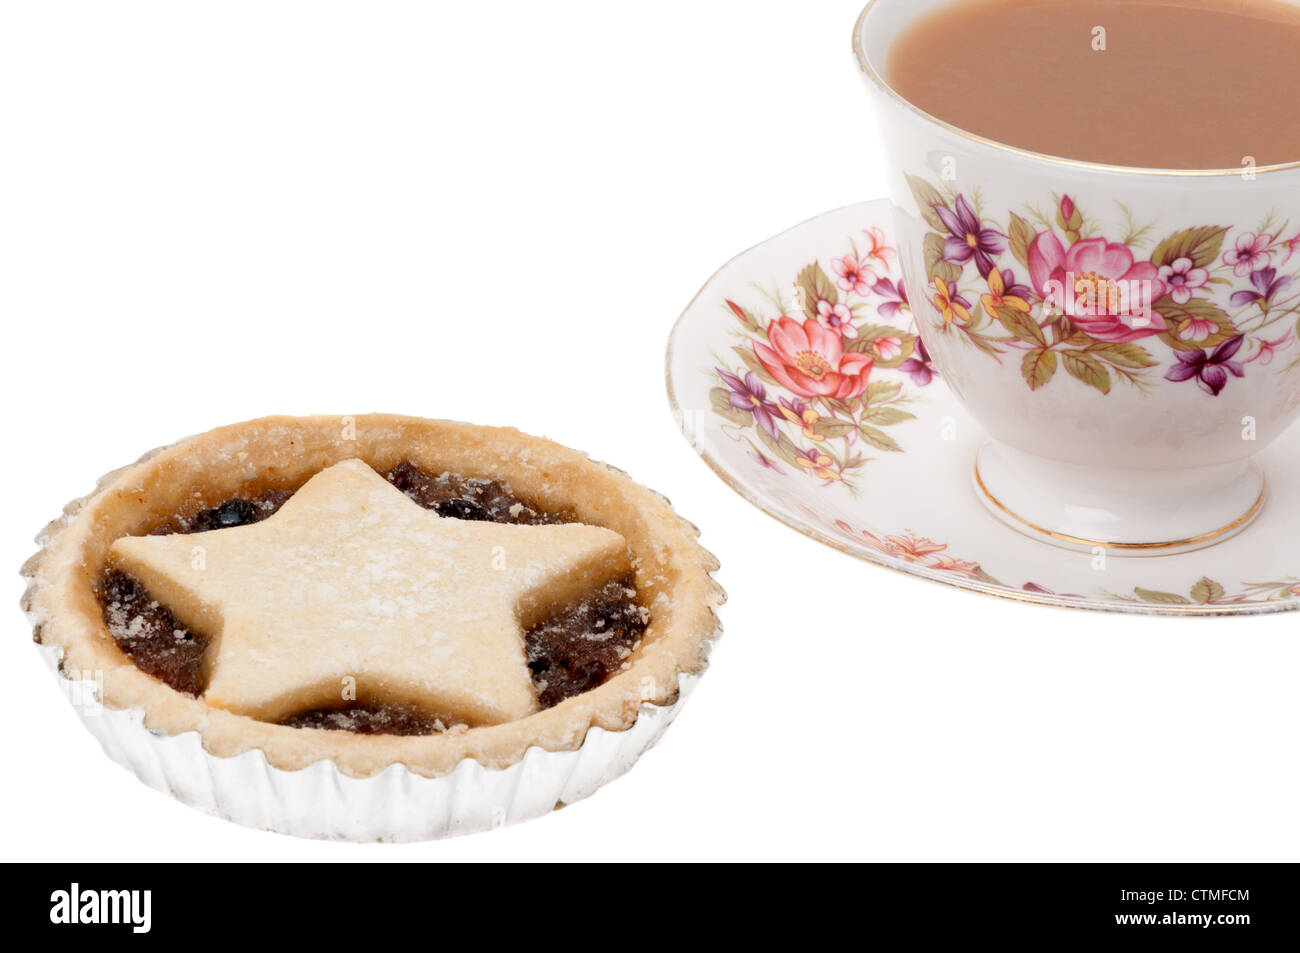 A single festive or Christmas mince pie with a cup of tea served in an ornate bone china cup and saucer - studio - Stock Image